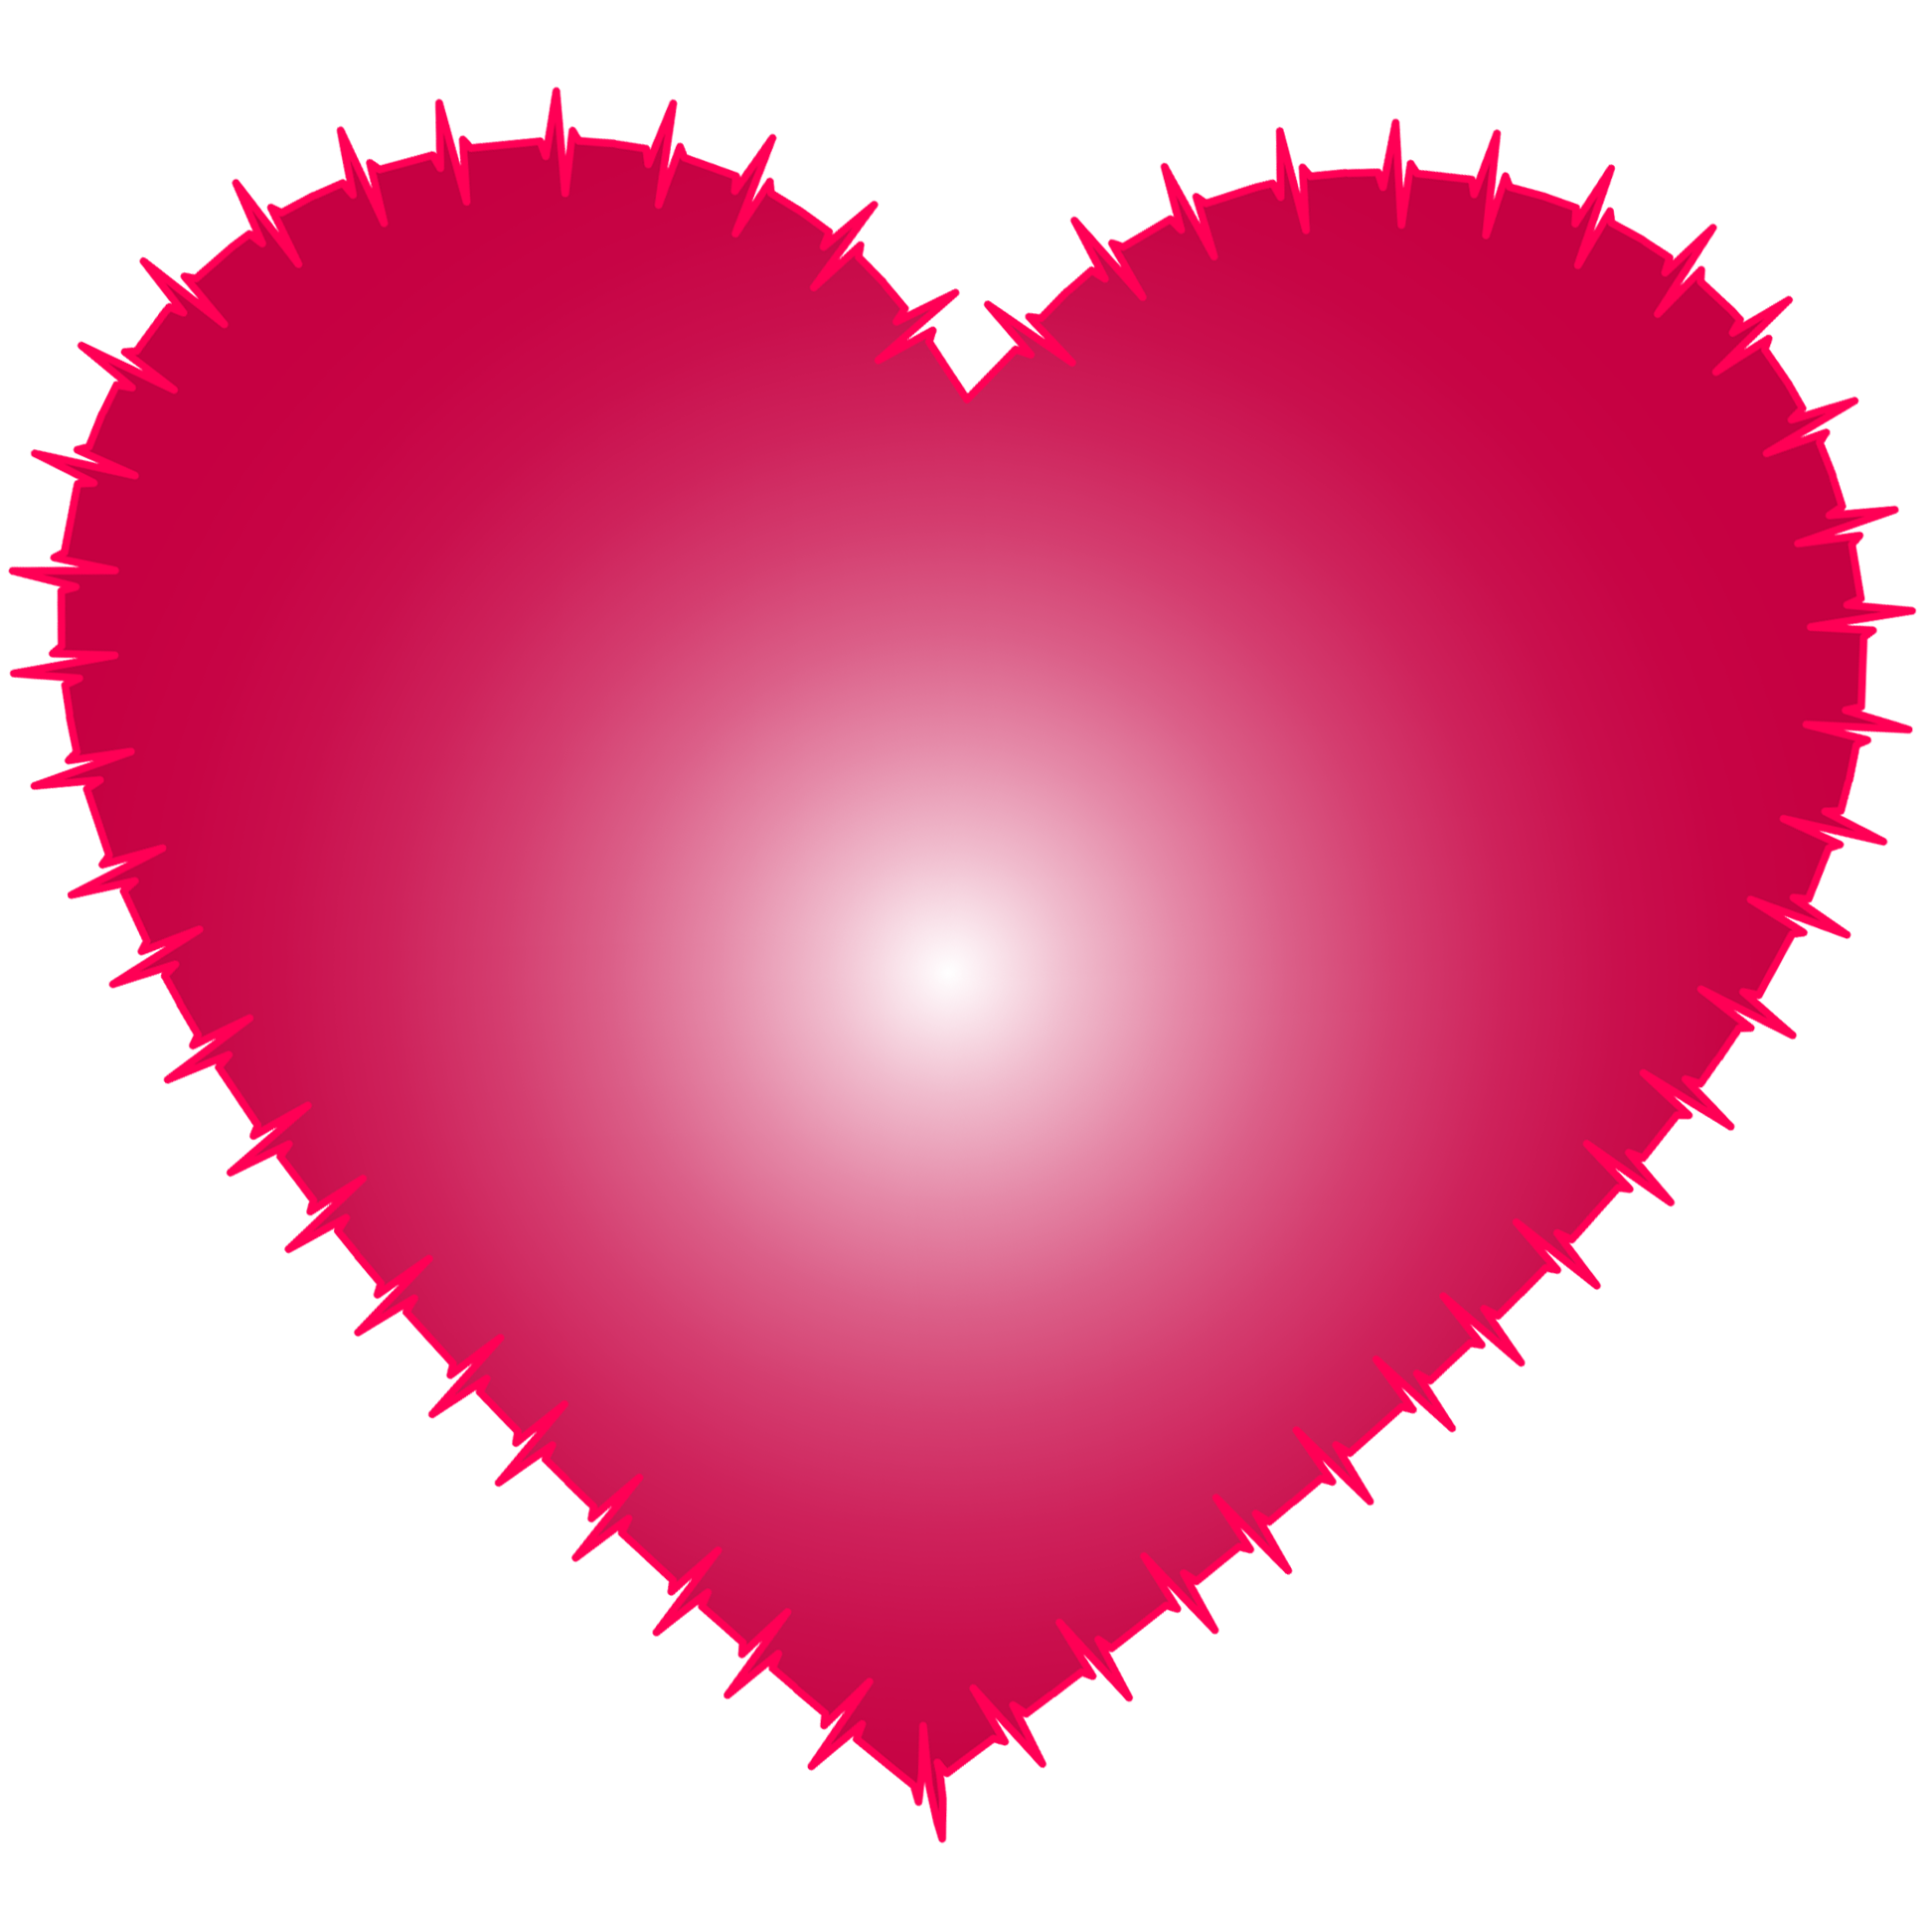 Heart vector clipart png free Heart Vector PNG Transparent Image - PngPix png free